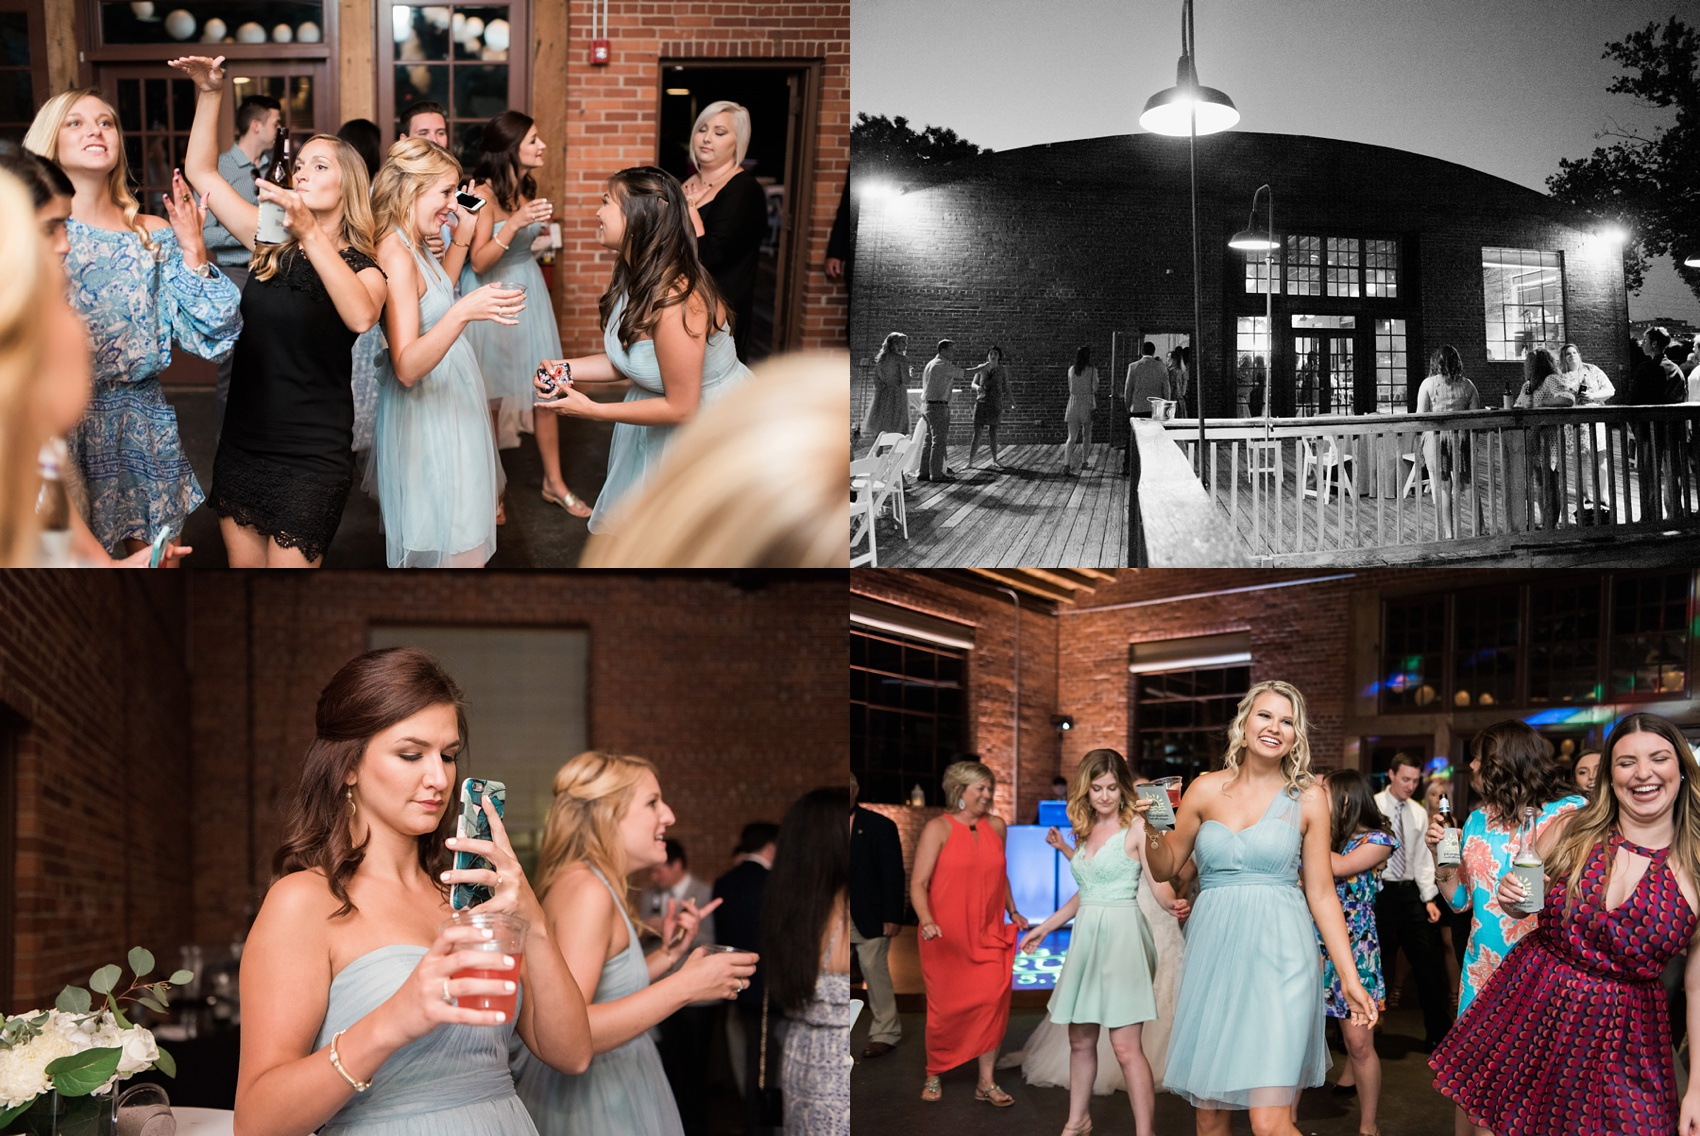 columbia_wedding_photographer_0340.jpg